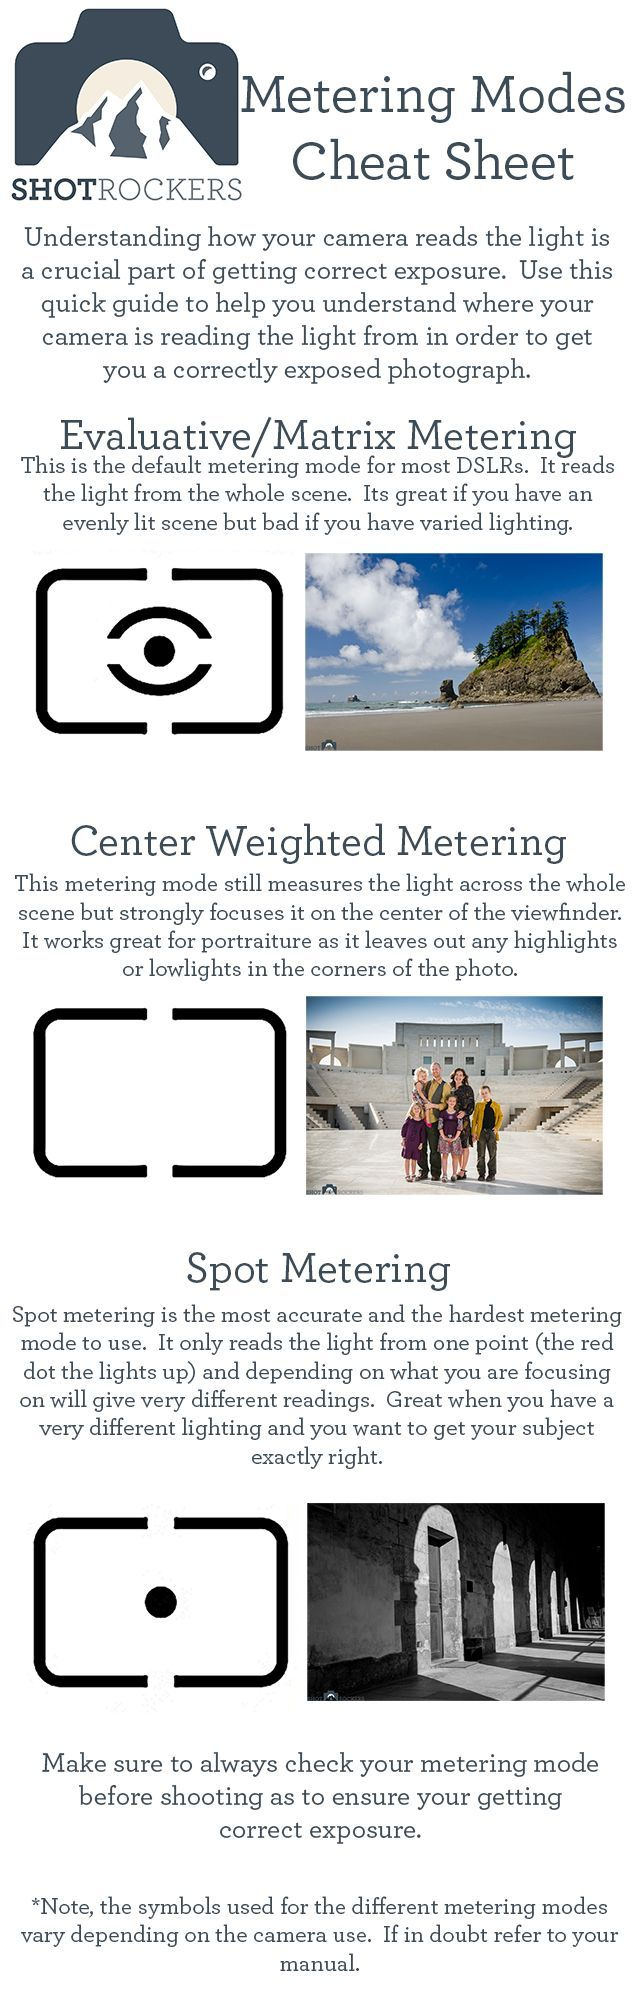 Camera Metering Modes Cheat Sheet by ShotRockers.com!